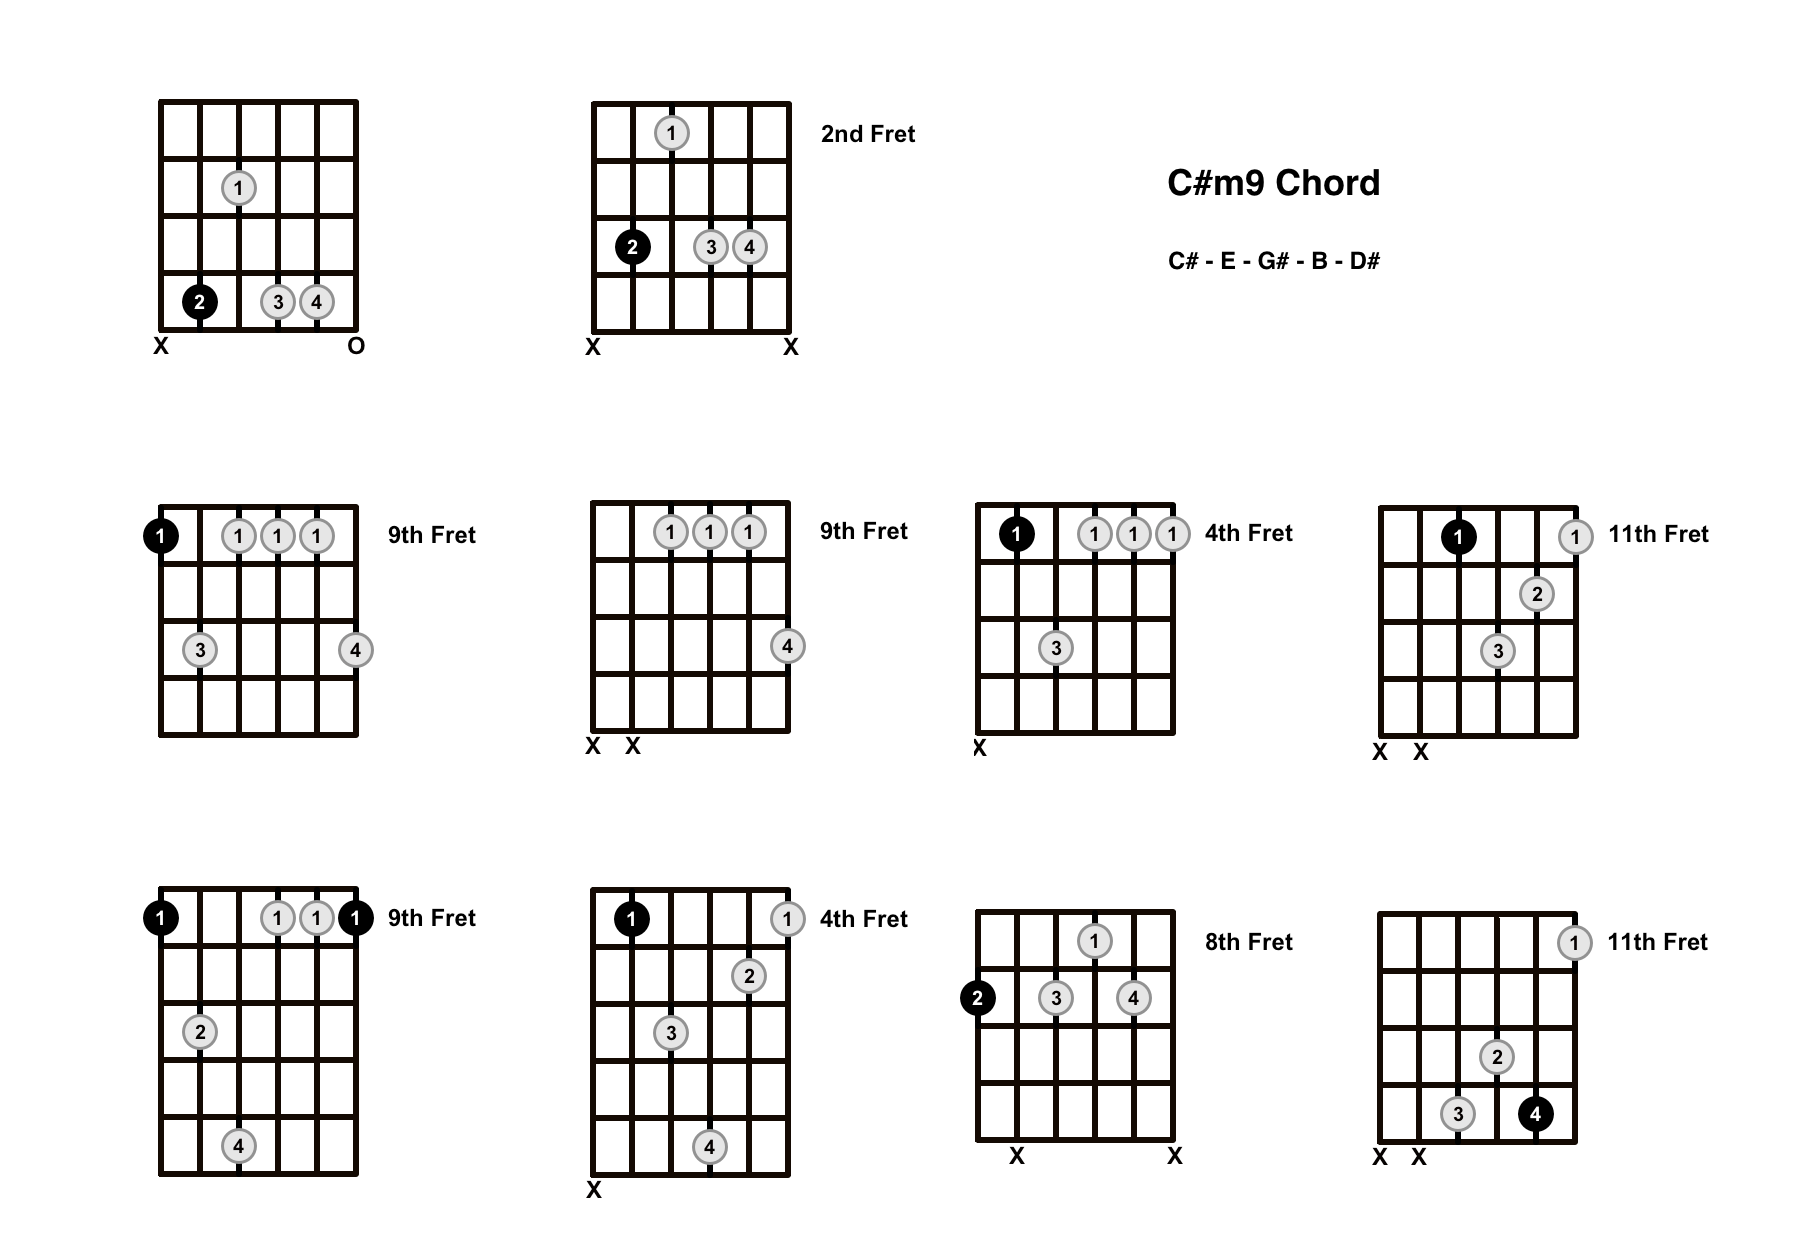 C#m9 Chord On The Guitar (C Sharp Minor 9) – Diagrams, Finger Positions and Theory